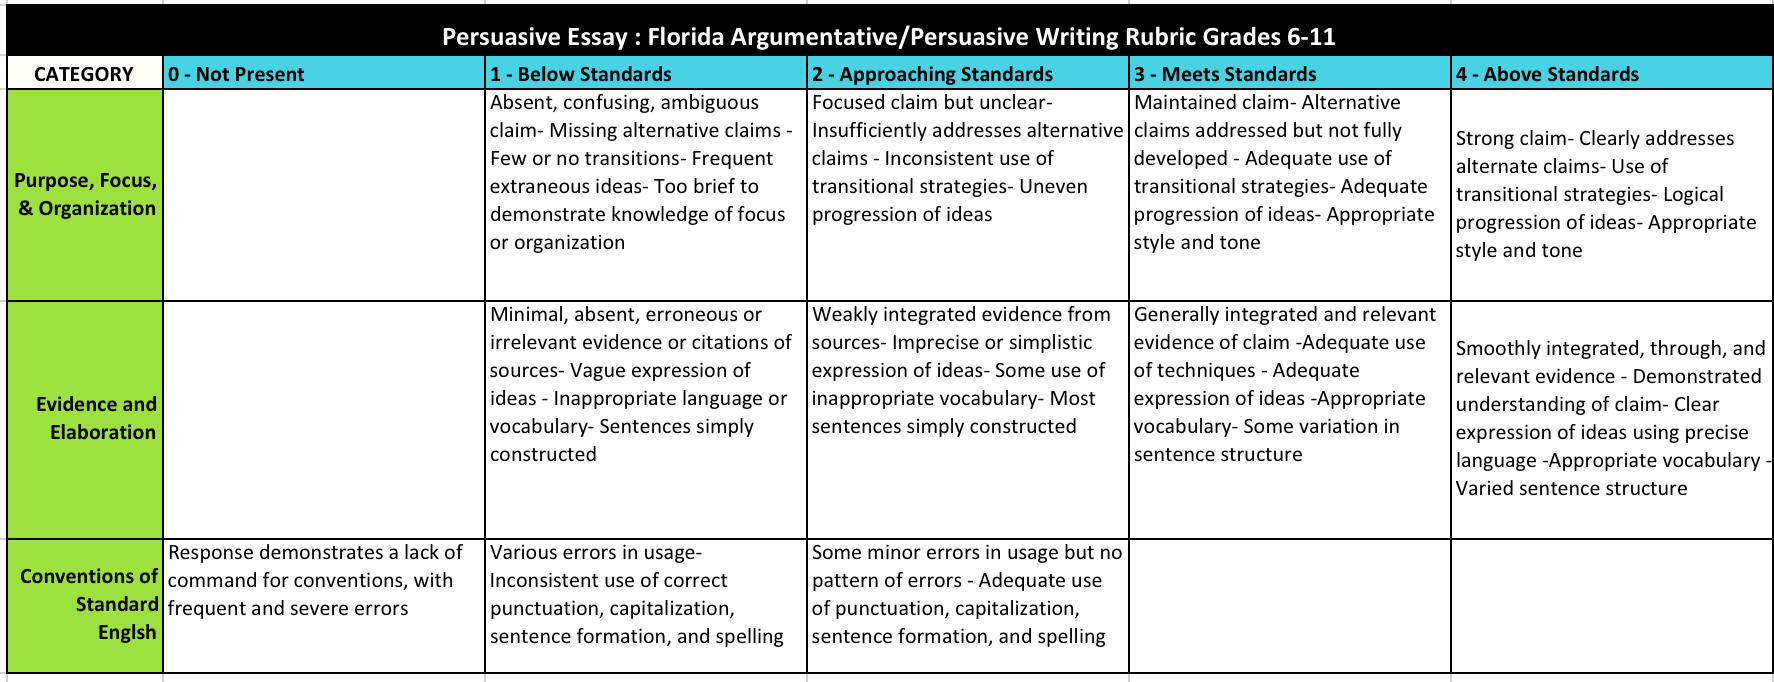 rubric for economics research paper Research question rubrics for economics mcgoldrick (2007) offers guidelines for developing quality research questions in economics (scroll to figure 2) paper and proposal rubrics for economics greenlaw (2006)'s doing economics, a text written for undergraduate researchers, offers rubrics for both research proposals and research papers.